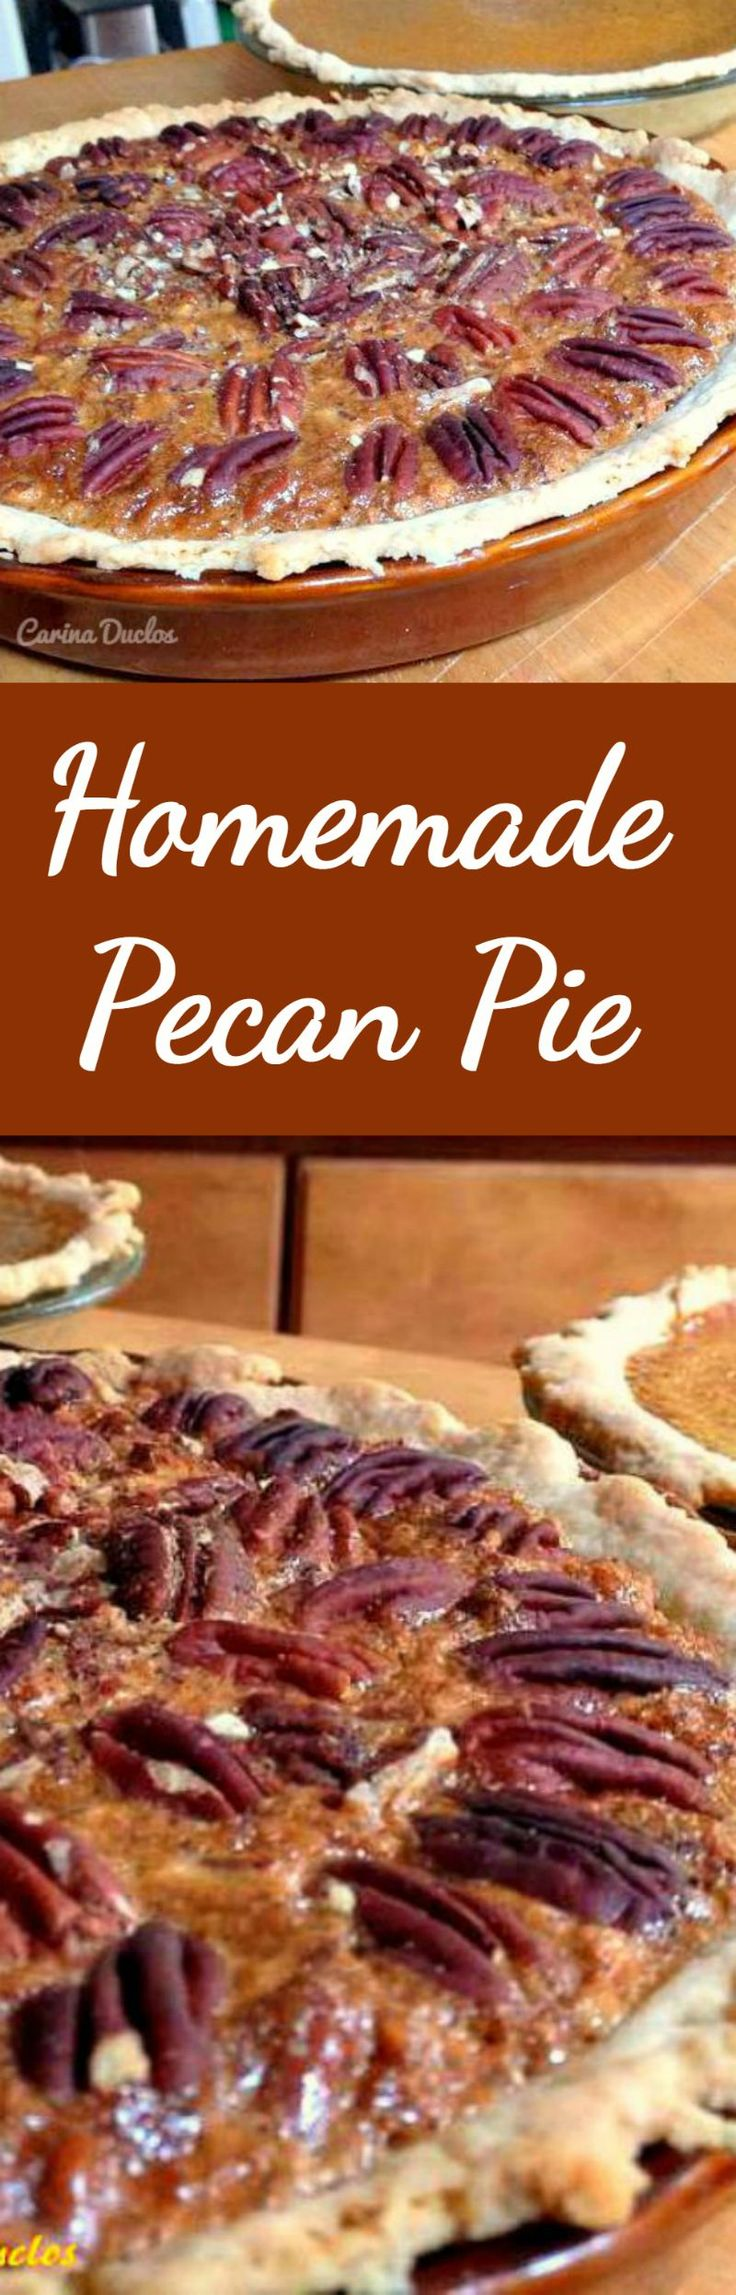 Homemade Pecan Pie. A delicious pie all made from scratch and super easy too! #Thanksgiving Dessert #pecanpie